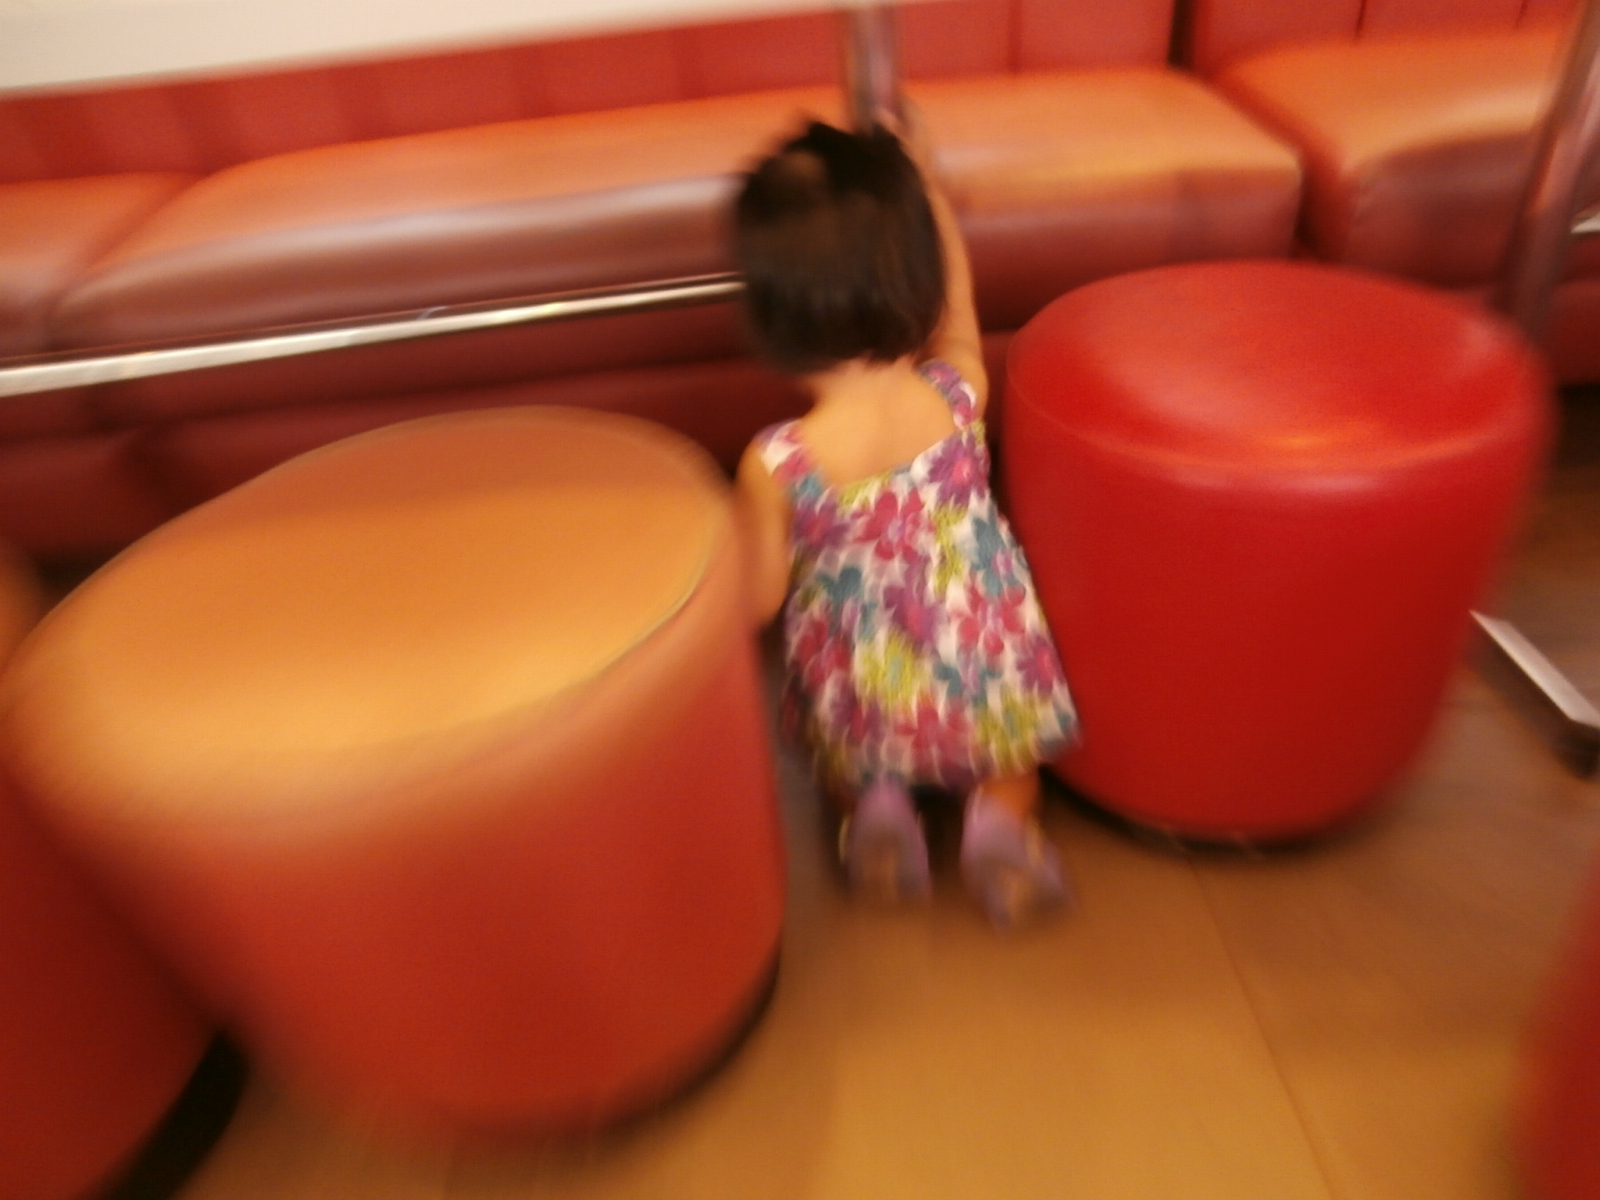 a kid playing at Jollibee she is only 1 kid for now